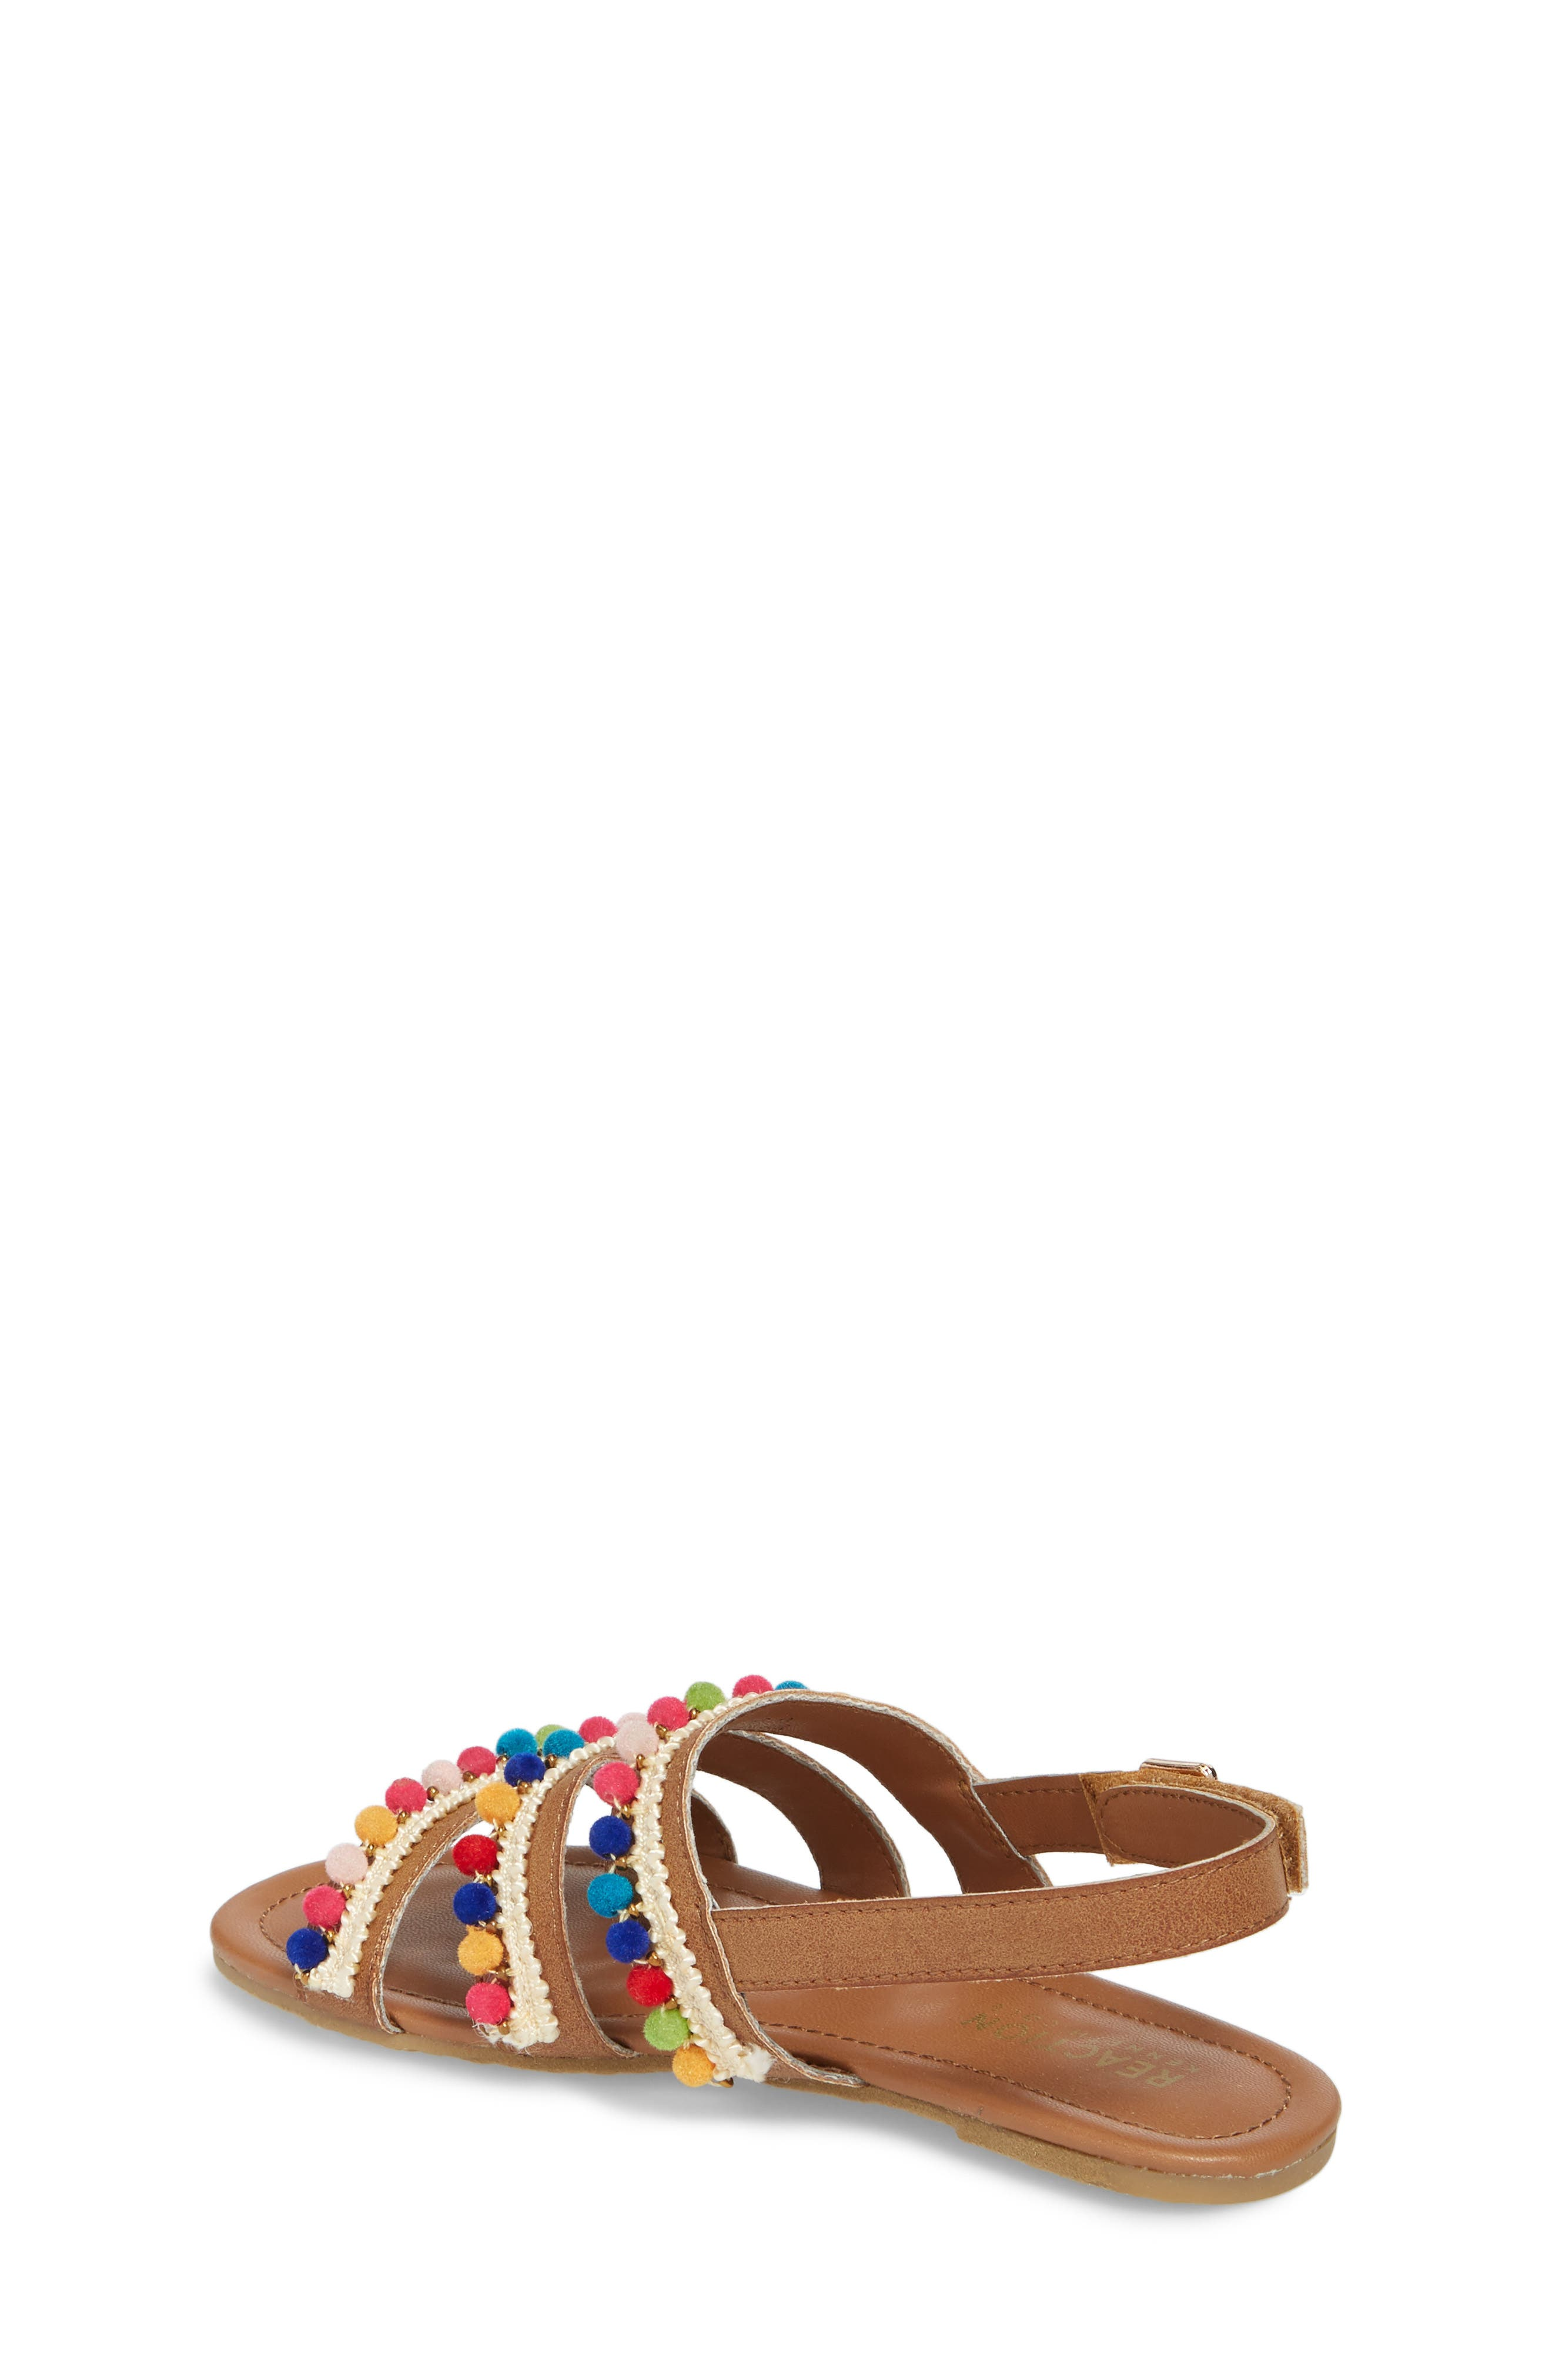 Kiera Pom Embellished Sandal,                             Alternate thumbnail 2, color,                             259